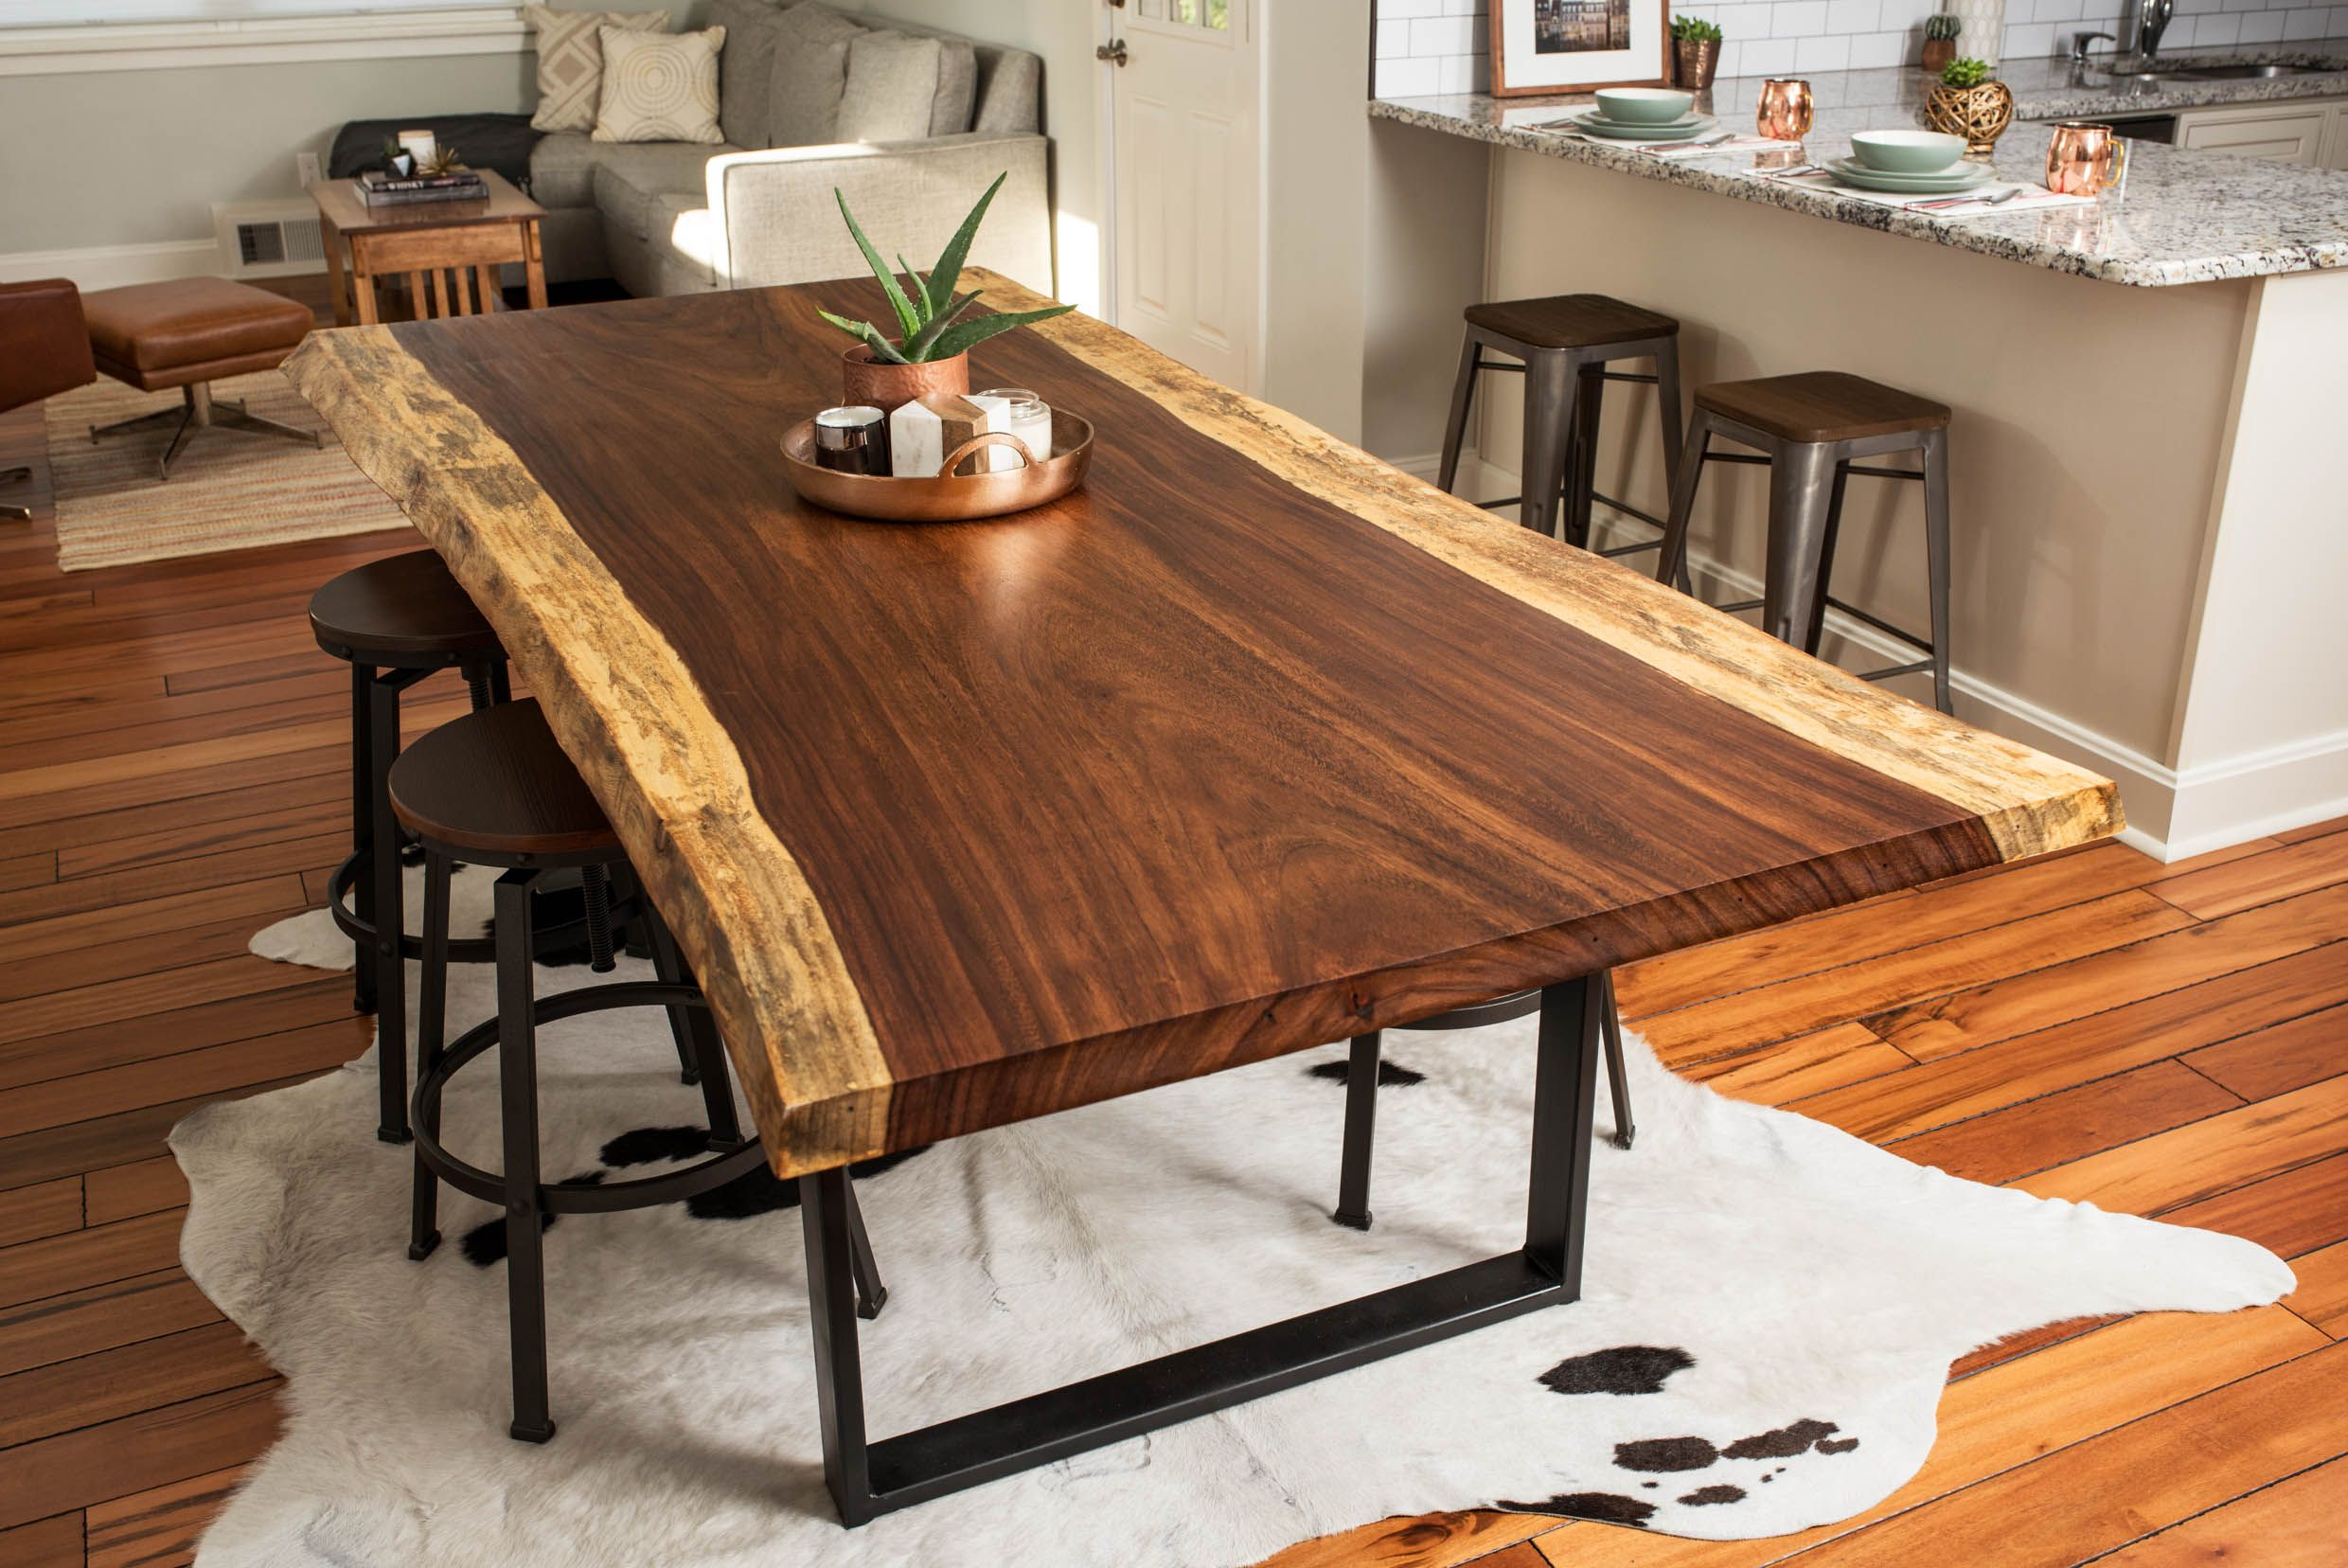 Buy a Hand Made Live Edge Acacia DiningConference Table  : 4262351139819 from www.custommade.com size 2480 x 1656 jpeg 402kB